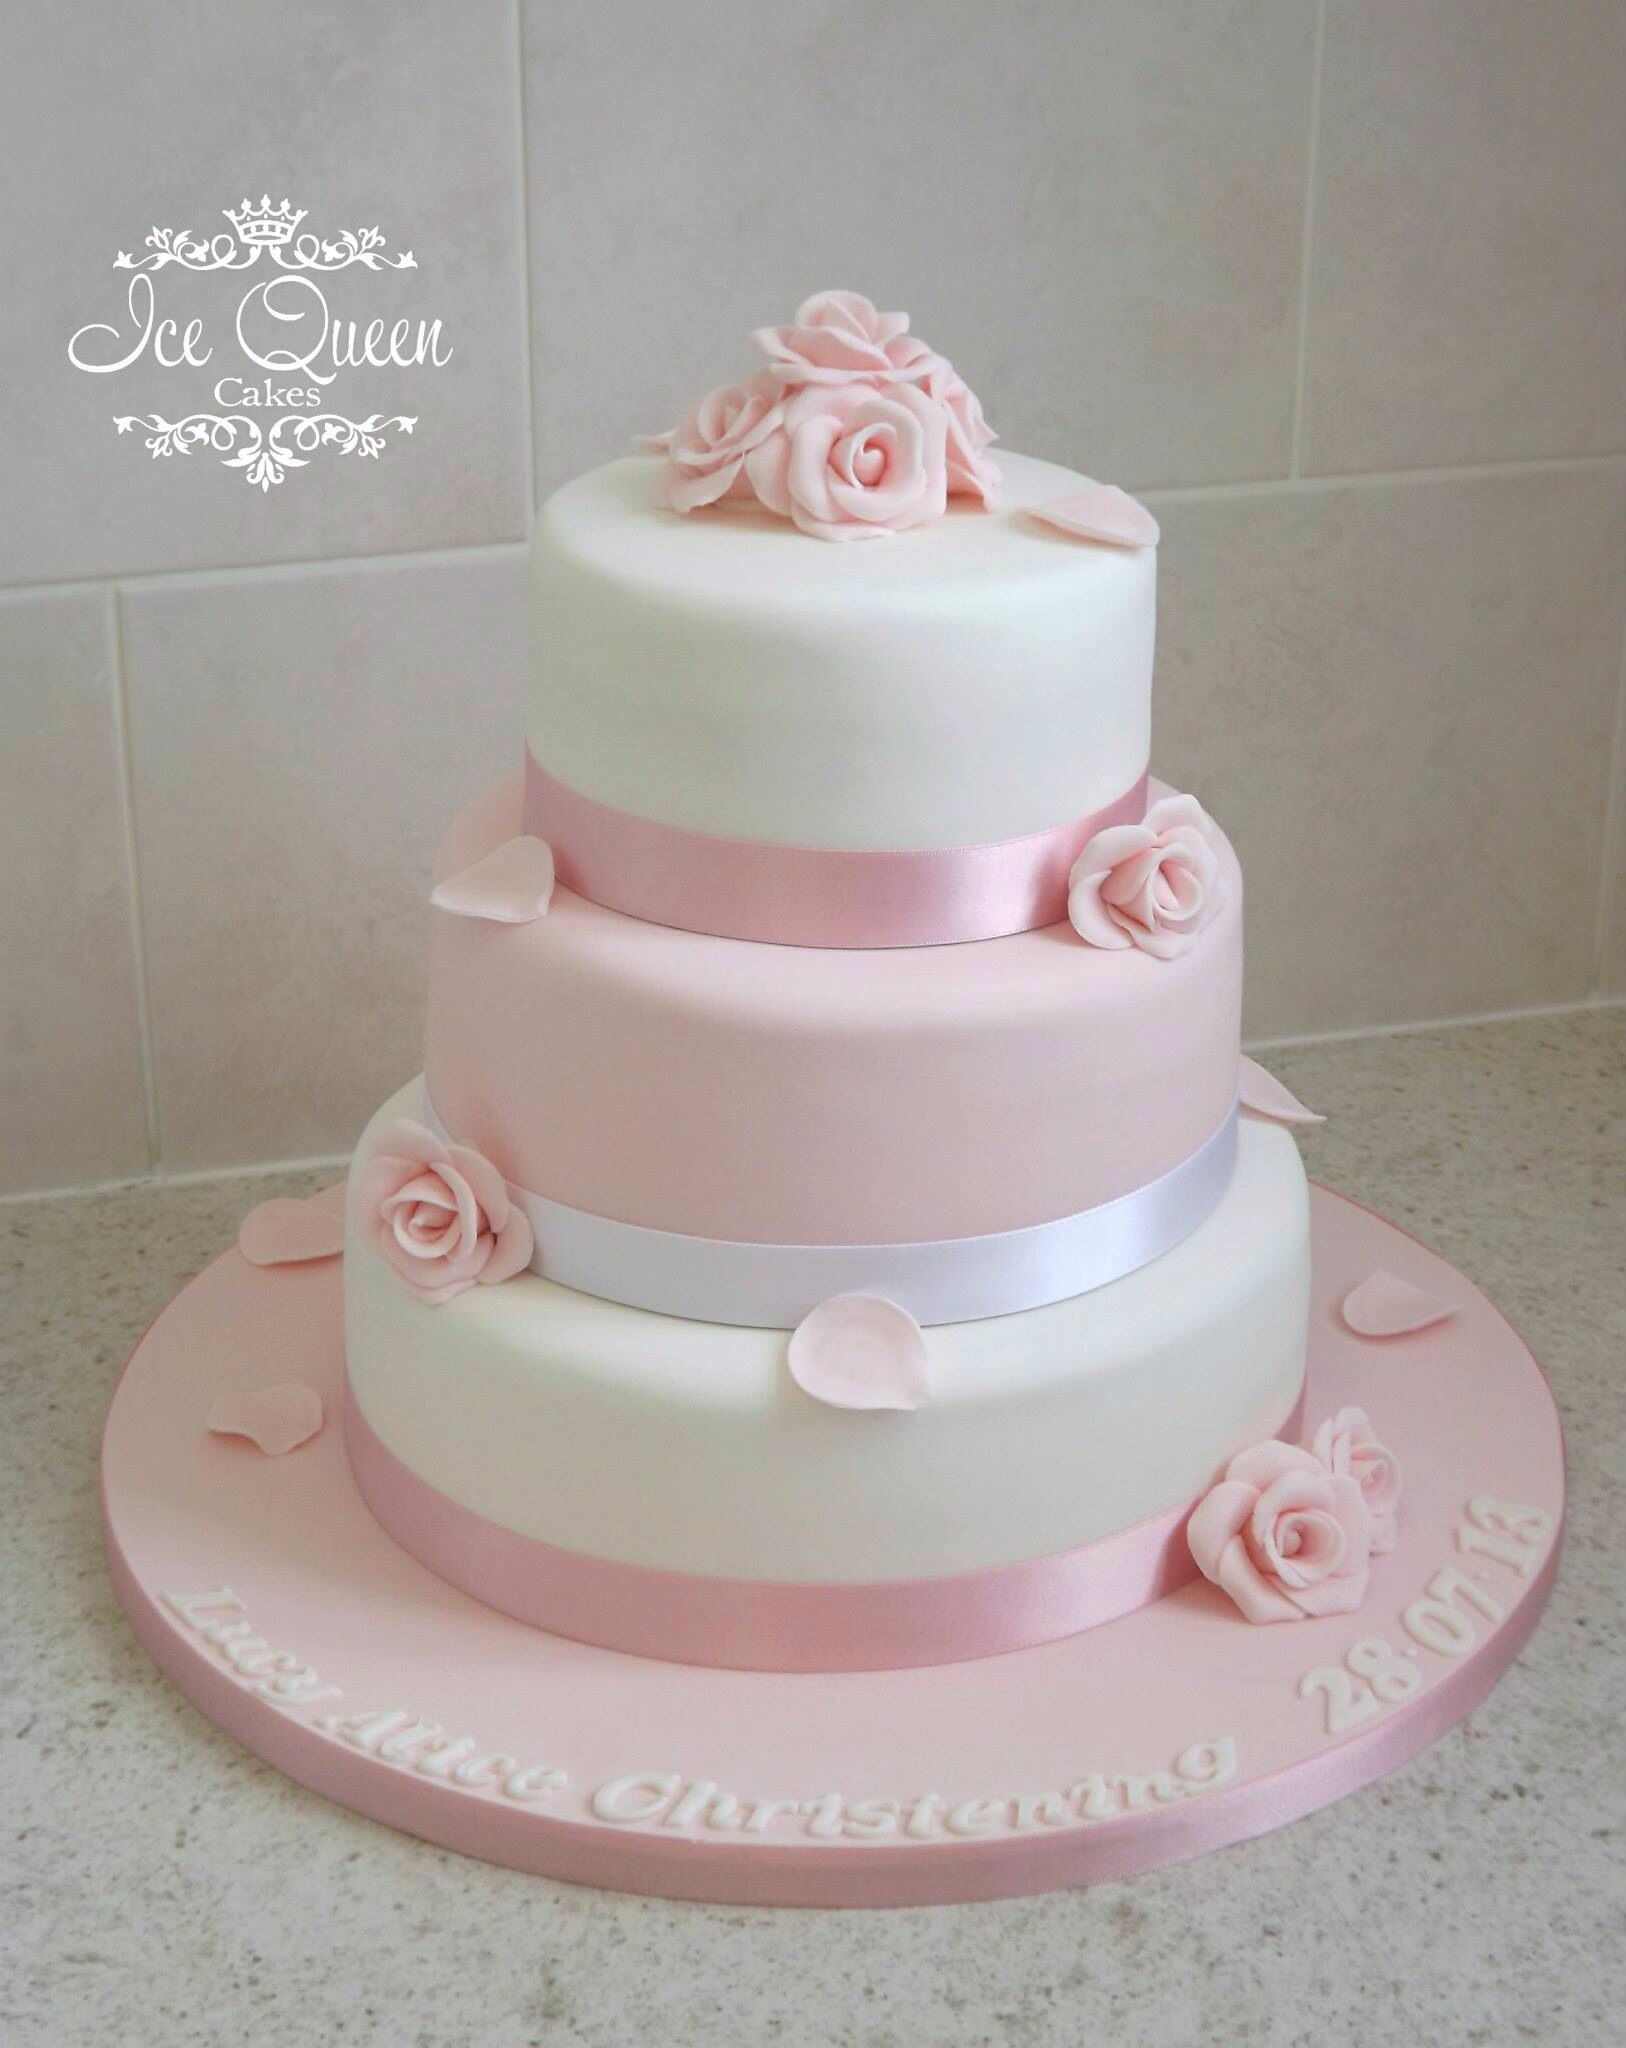 top tier of wedding cake for christening 3 tier pink amp white christening cake with roses 21069